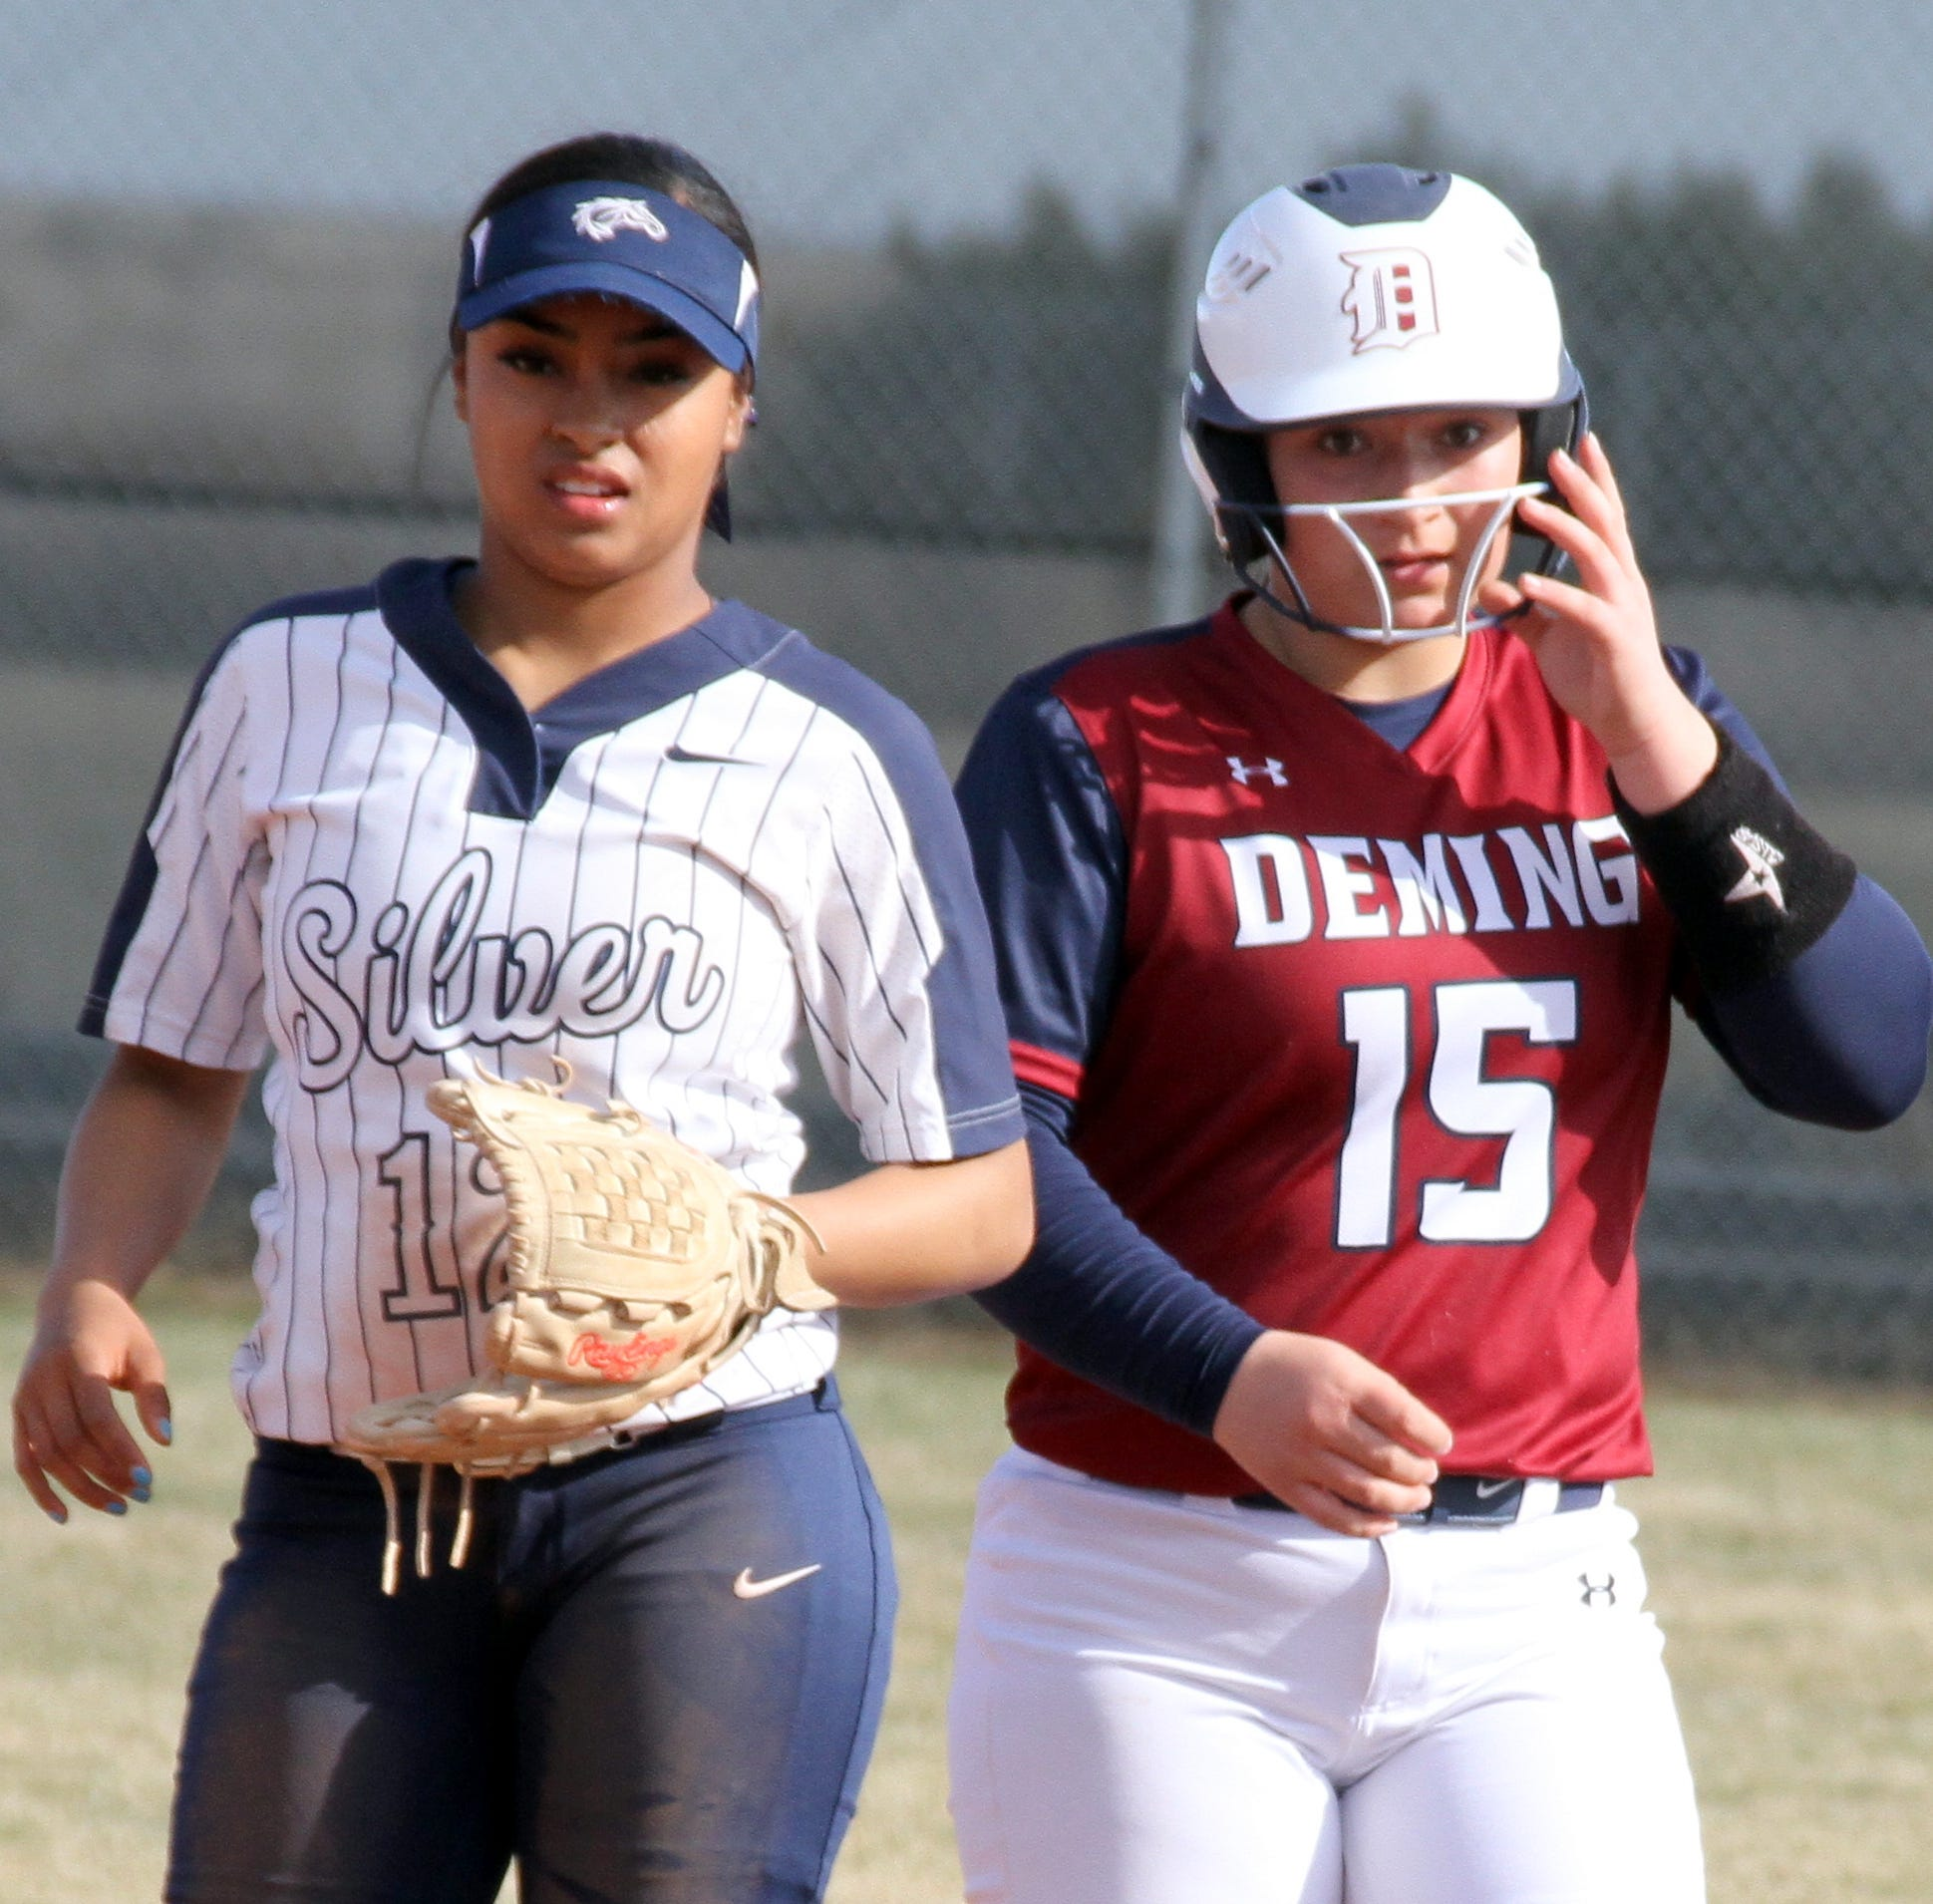 Deming High Lady 'Cats make District 3-5A softball debut against Bulldawgs in Las Cruces